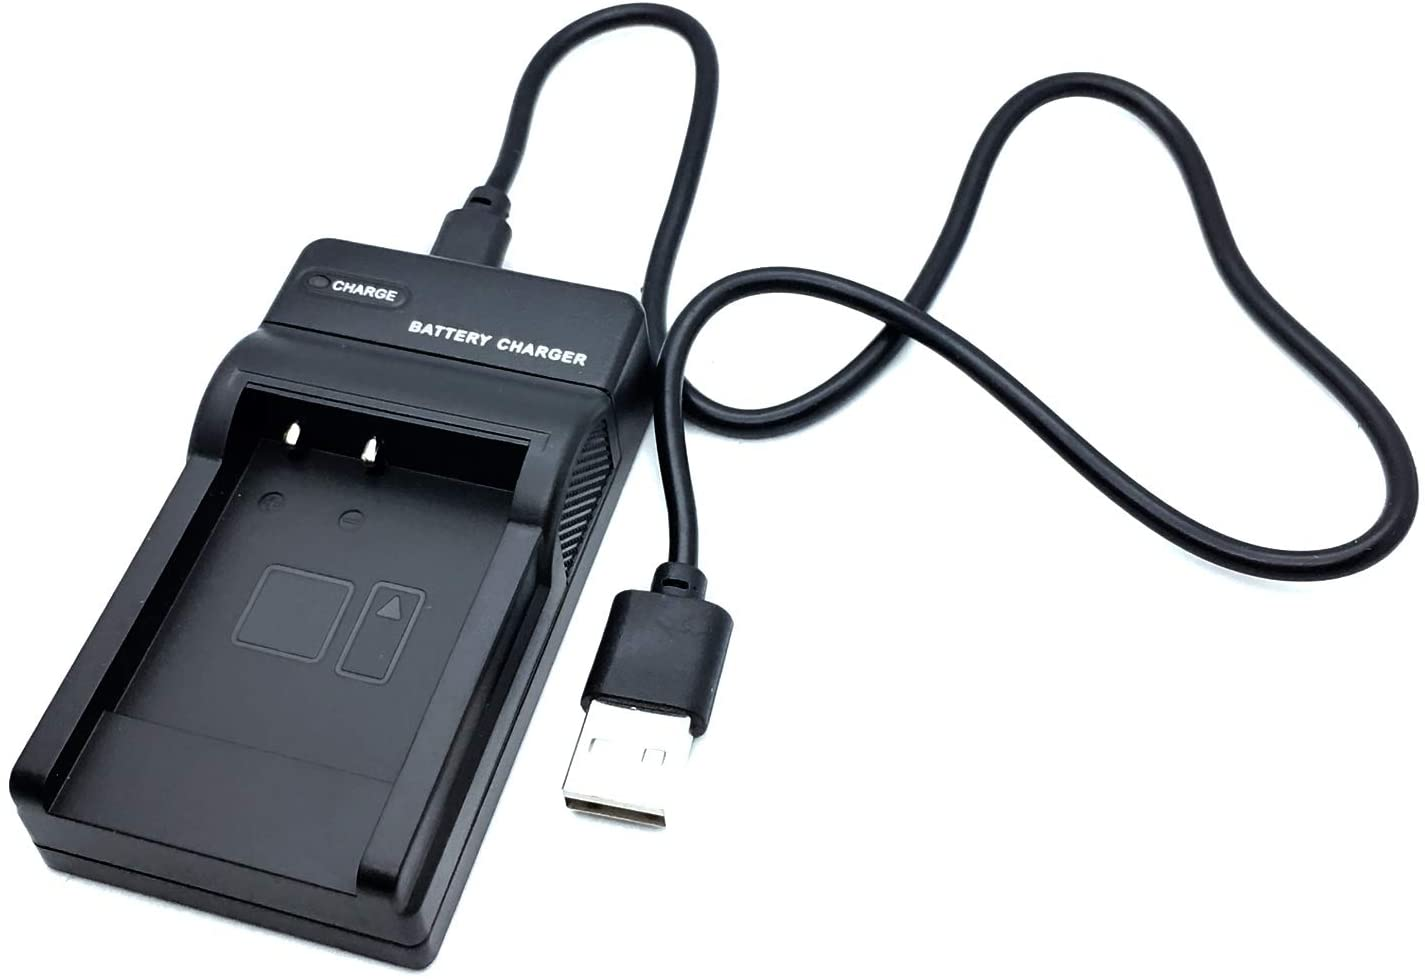 USB Battery Charger for Nikon Coolpix S1000, S1100, S1200 Digital Camera